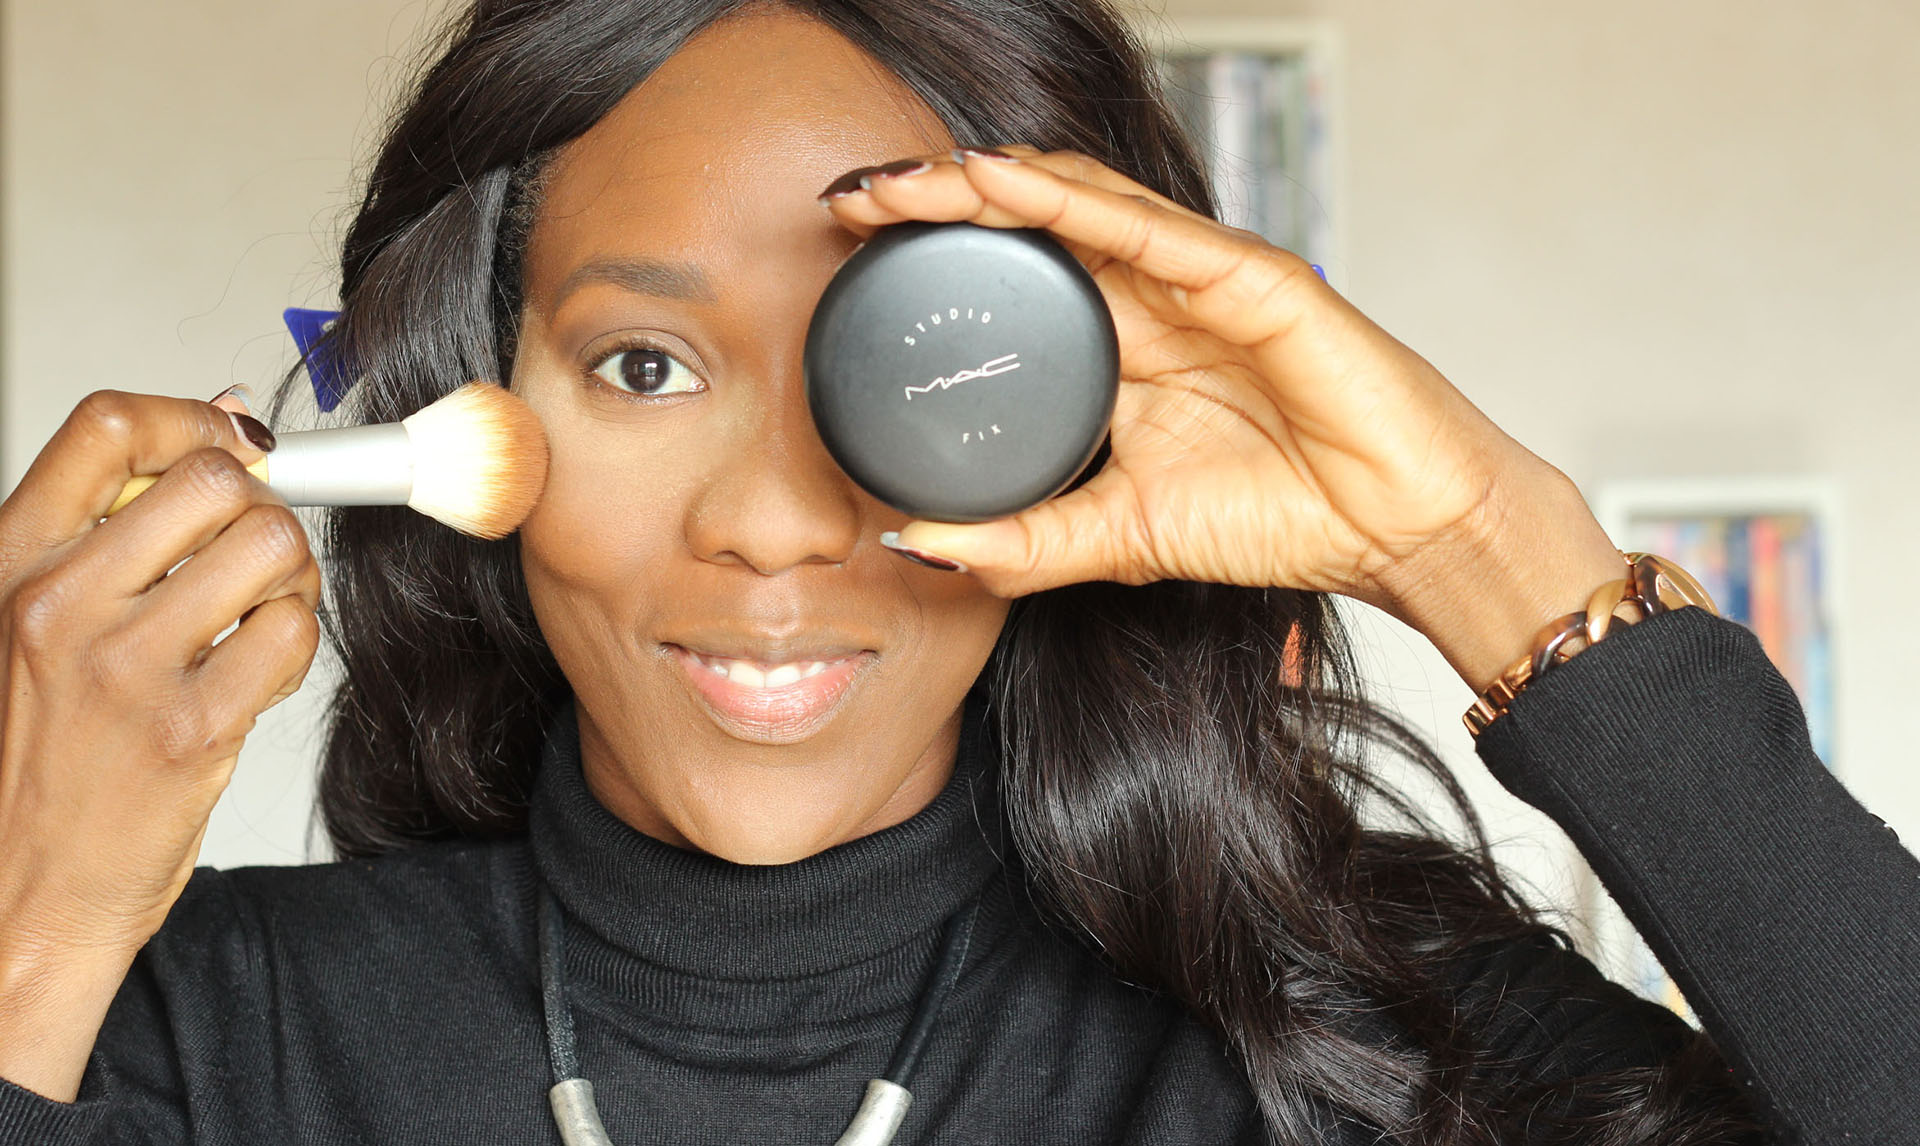 nunaavane-step-by-step-flawless-makeup-powder-foundation